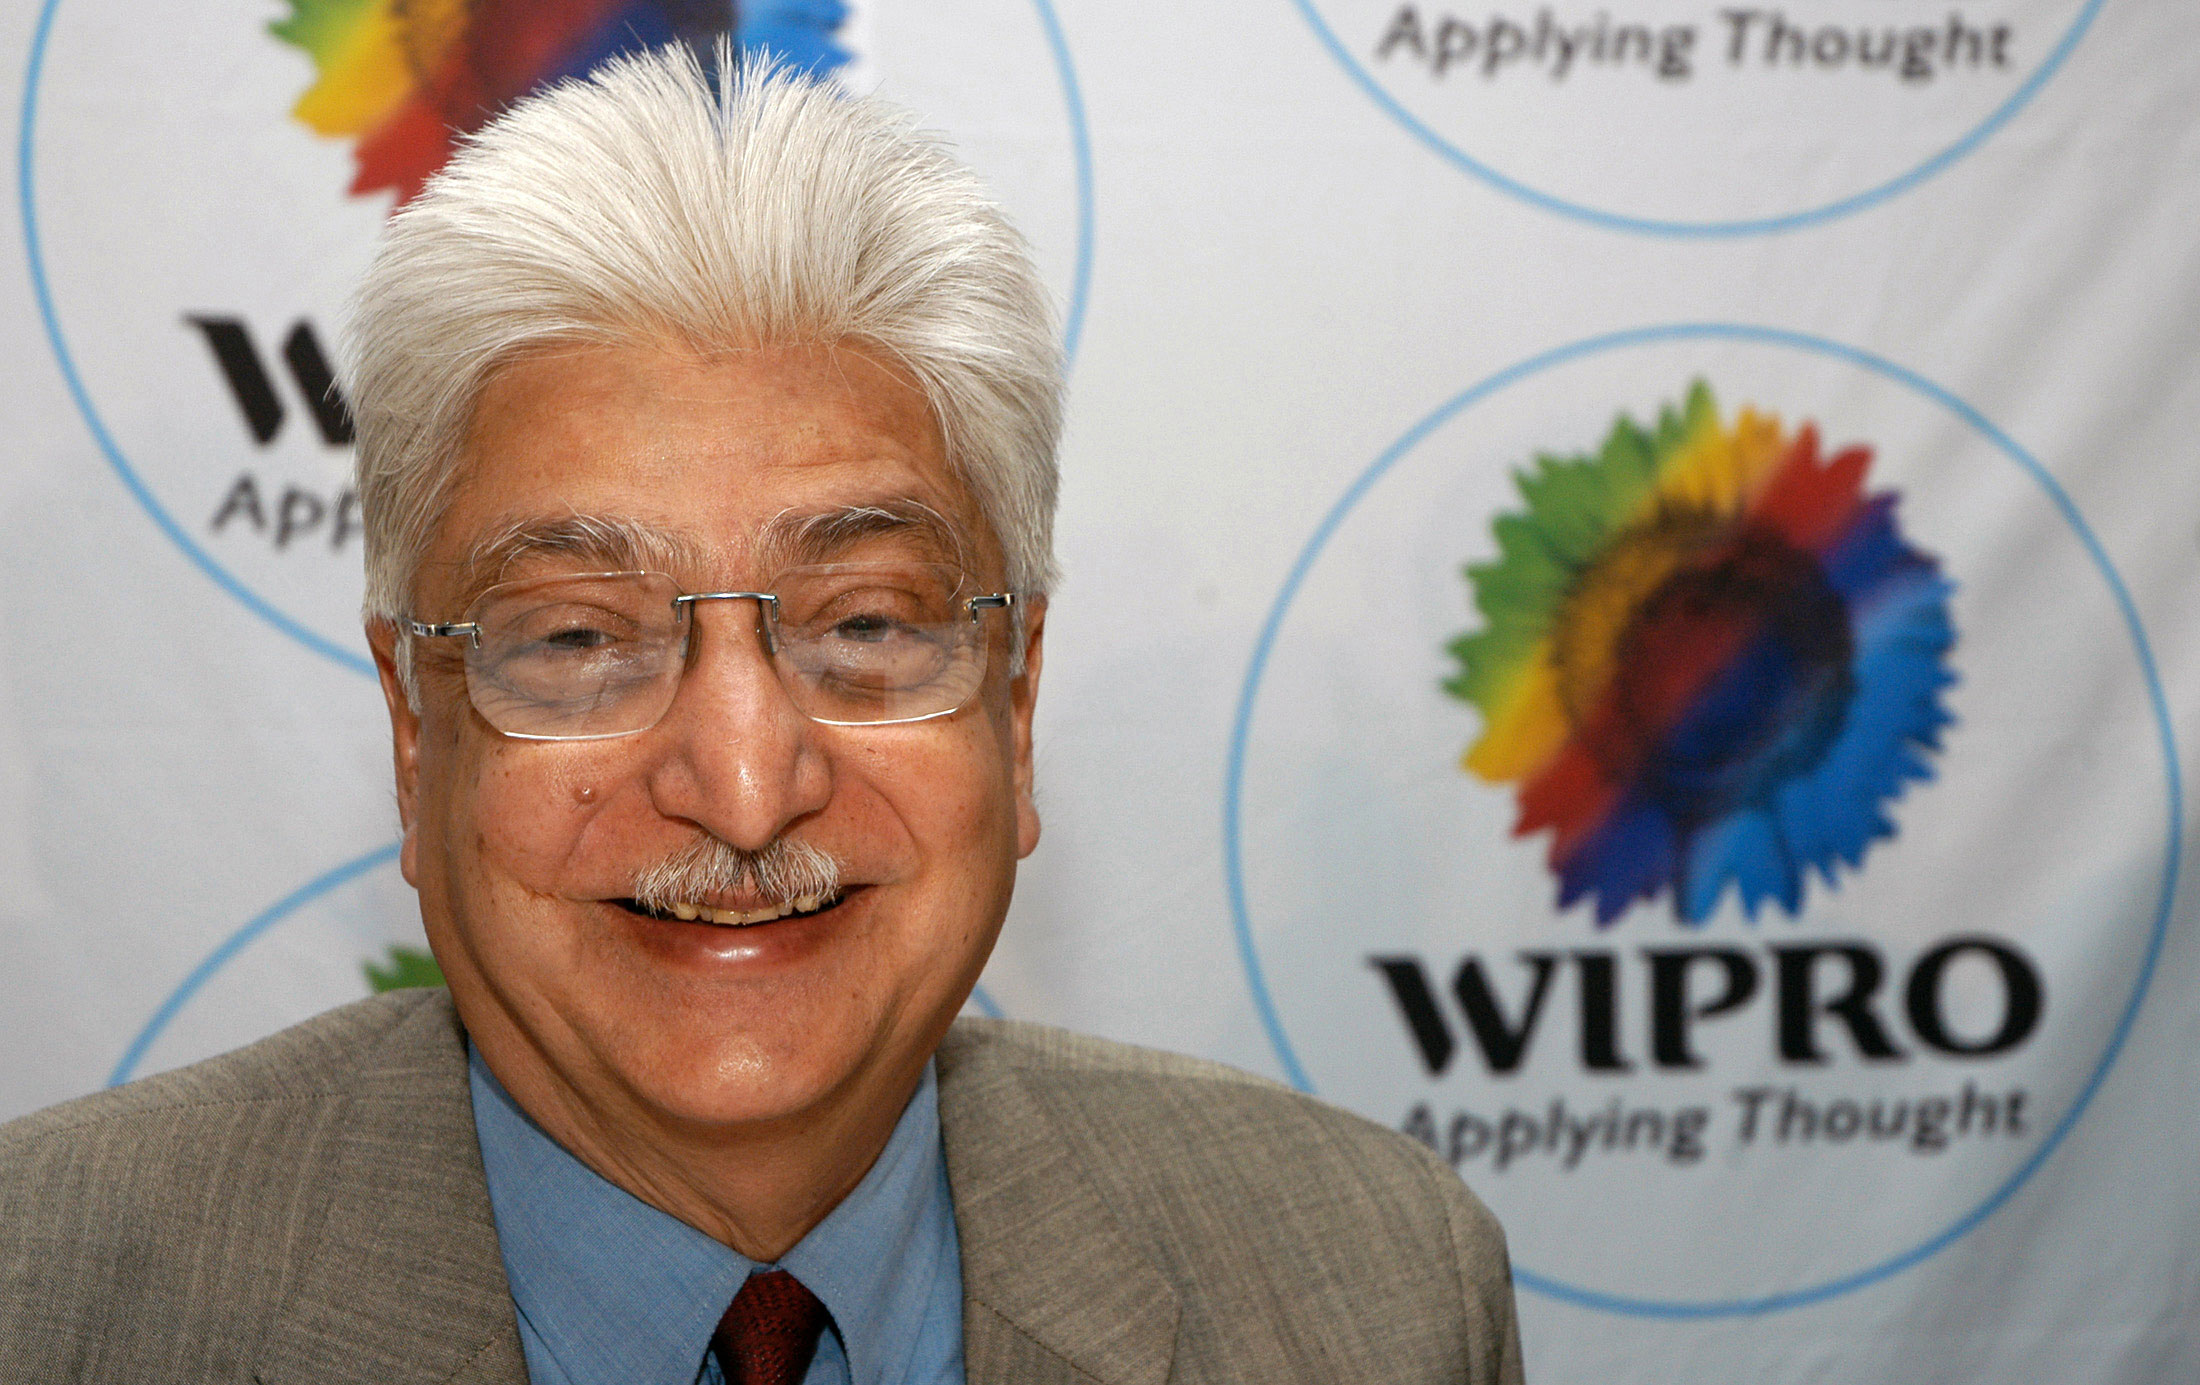 Wipro beats Q3 PAT estimates; Suresh Senapaty retiring, Jatin Dalal to take over as CFO